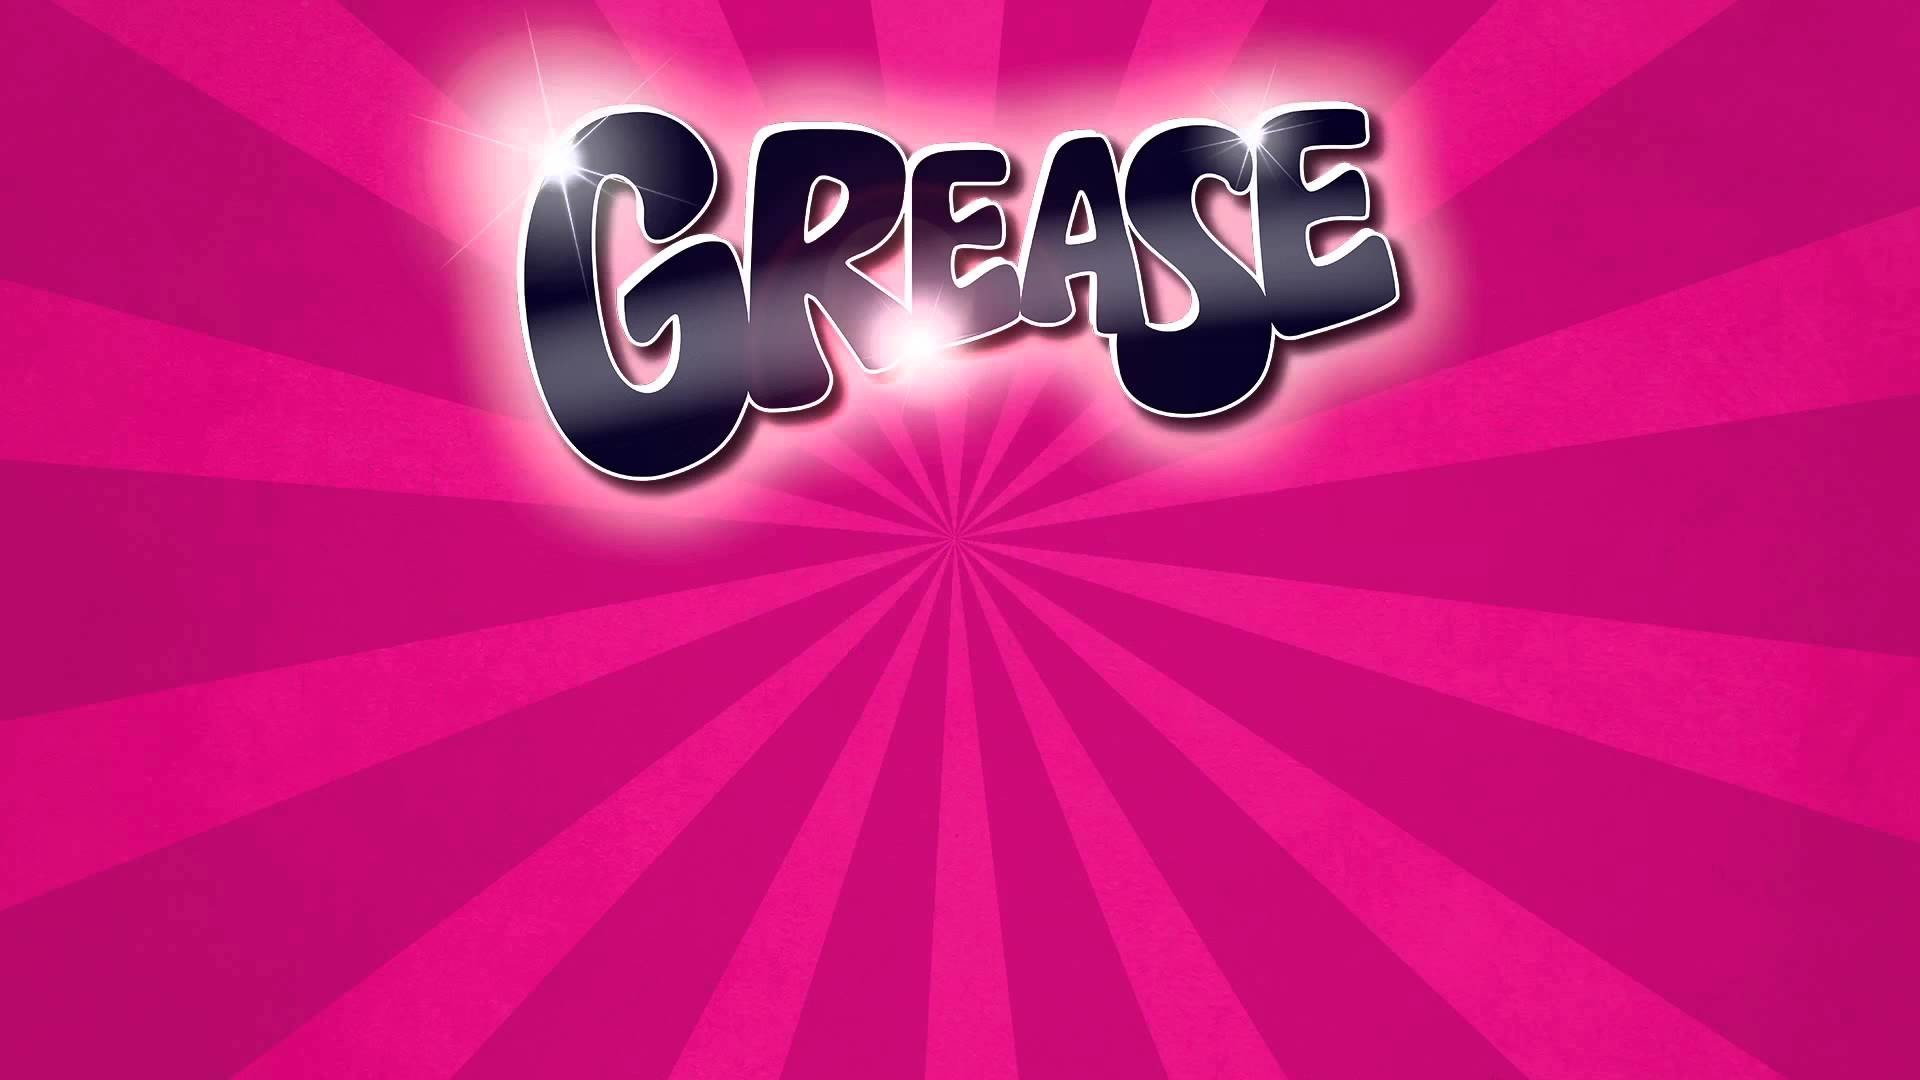 1920x1080 Best 25 Grease the musical ideas on Pinterest | Where was grease ... Grease  Wallpapers ...